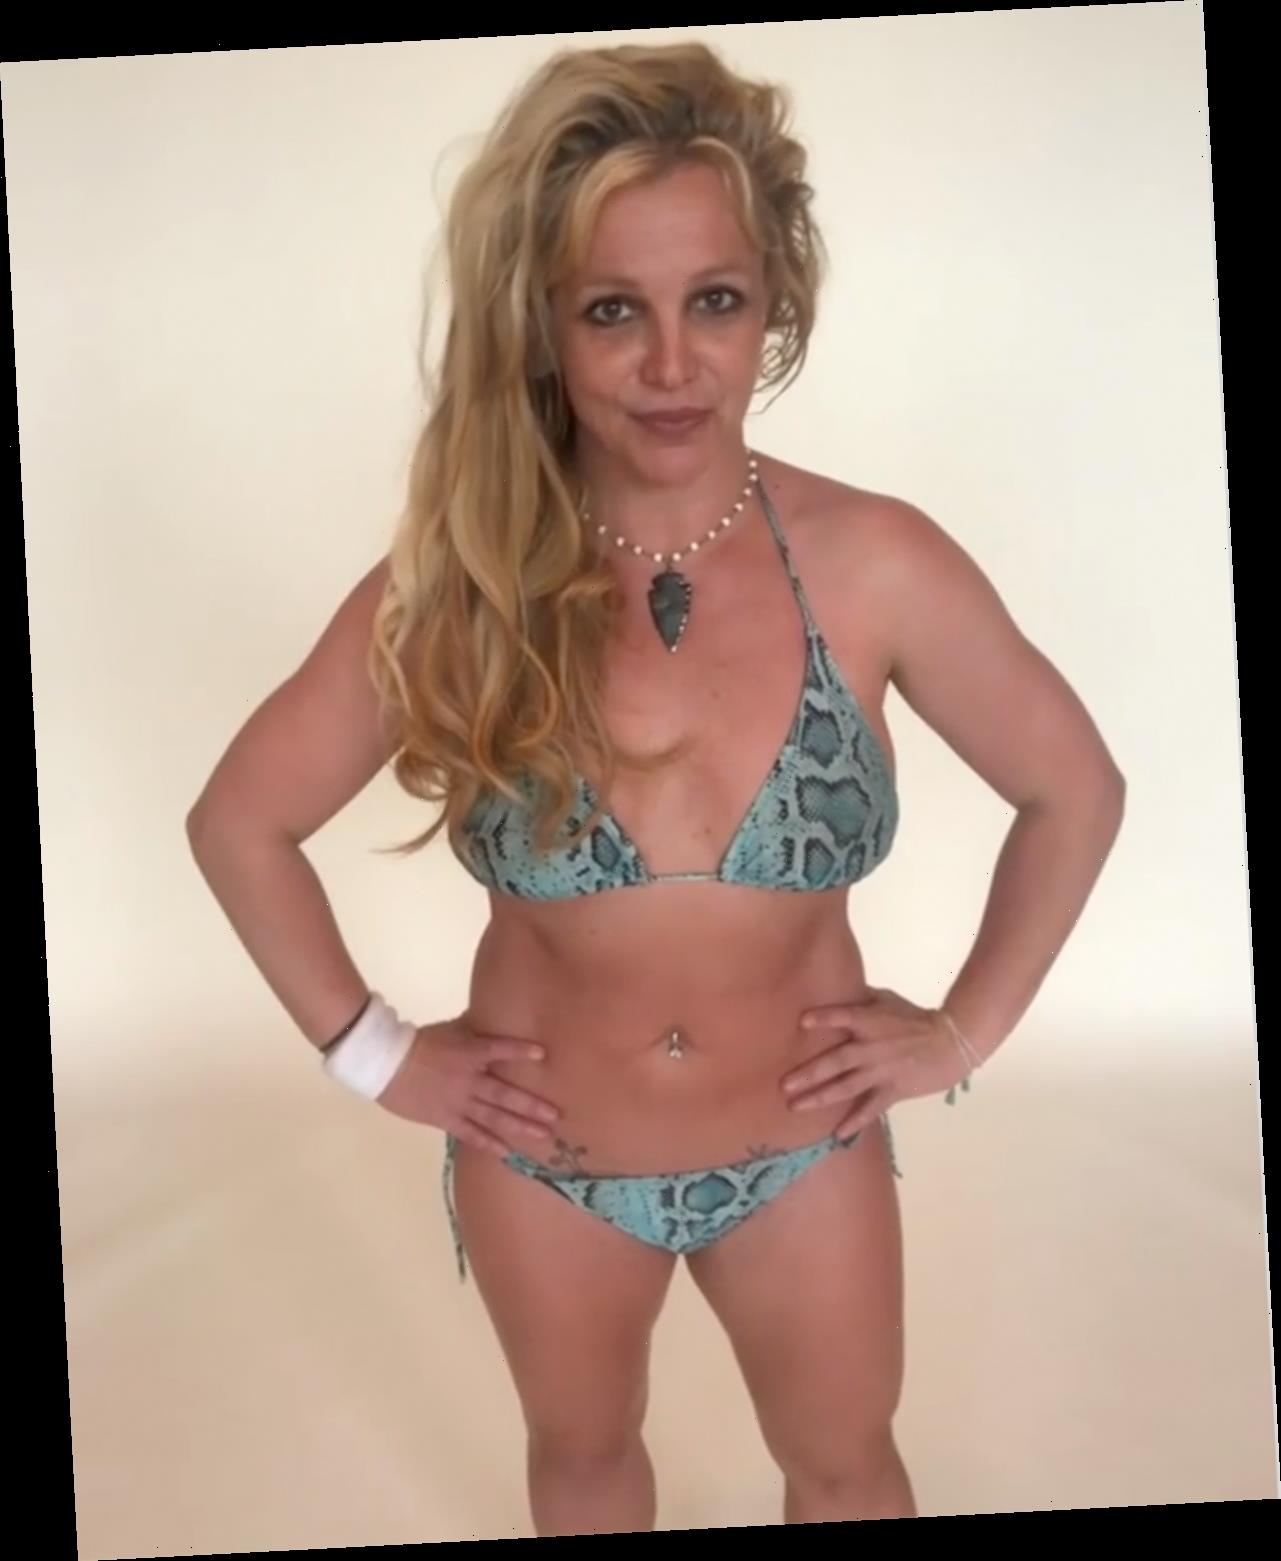 Britney Spears Shares Her Beach Day Essentials While Posing in Snakeskin-Print String Bikini